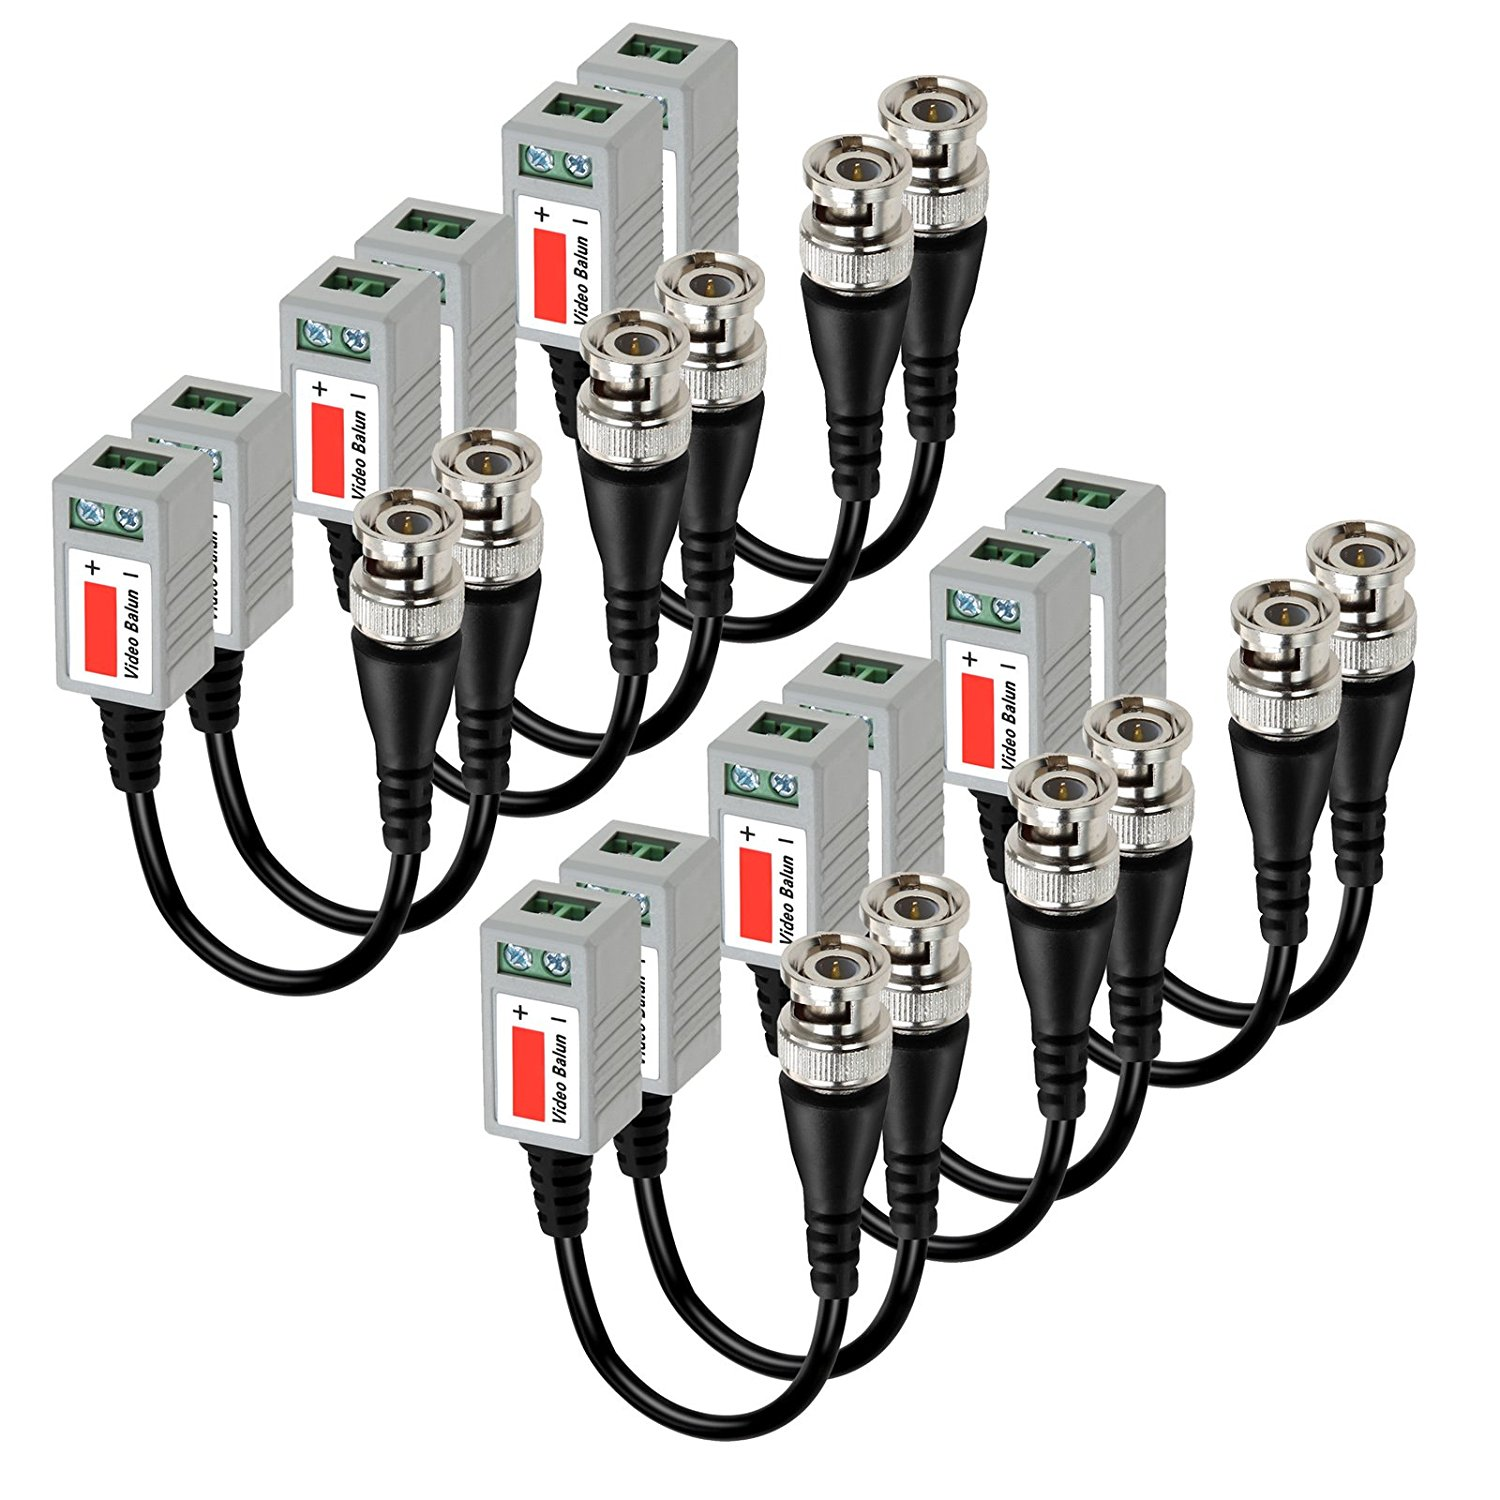 20 Pcs Passive Twisted Video Balun Transceiver Male BNC To CAT5 RJ45 UTP For CCTV AHD DVR Security Camera System